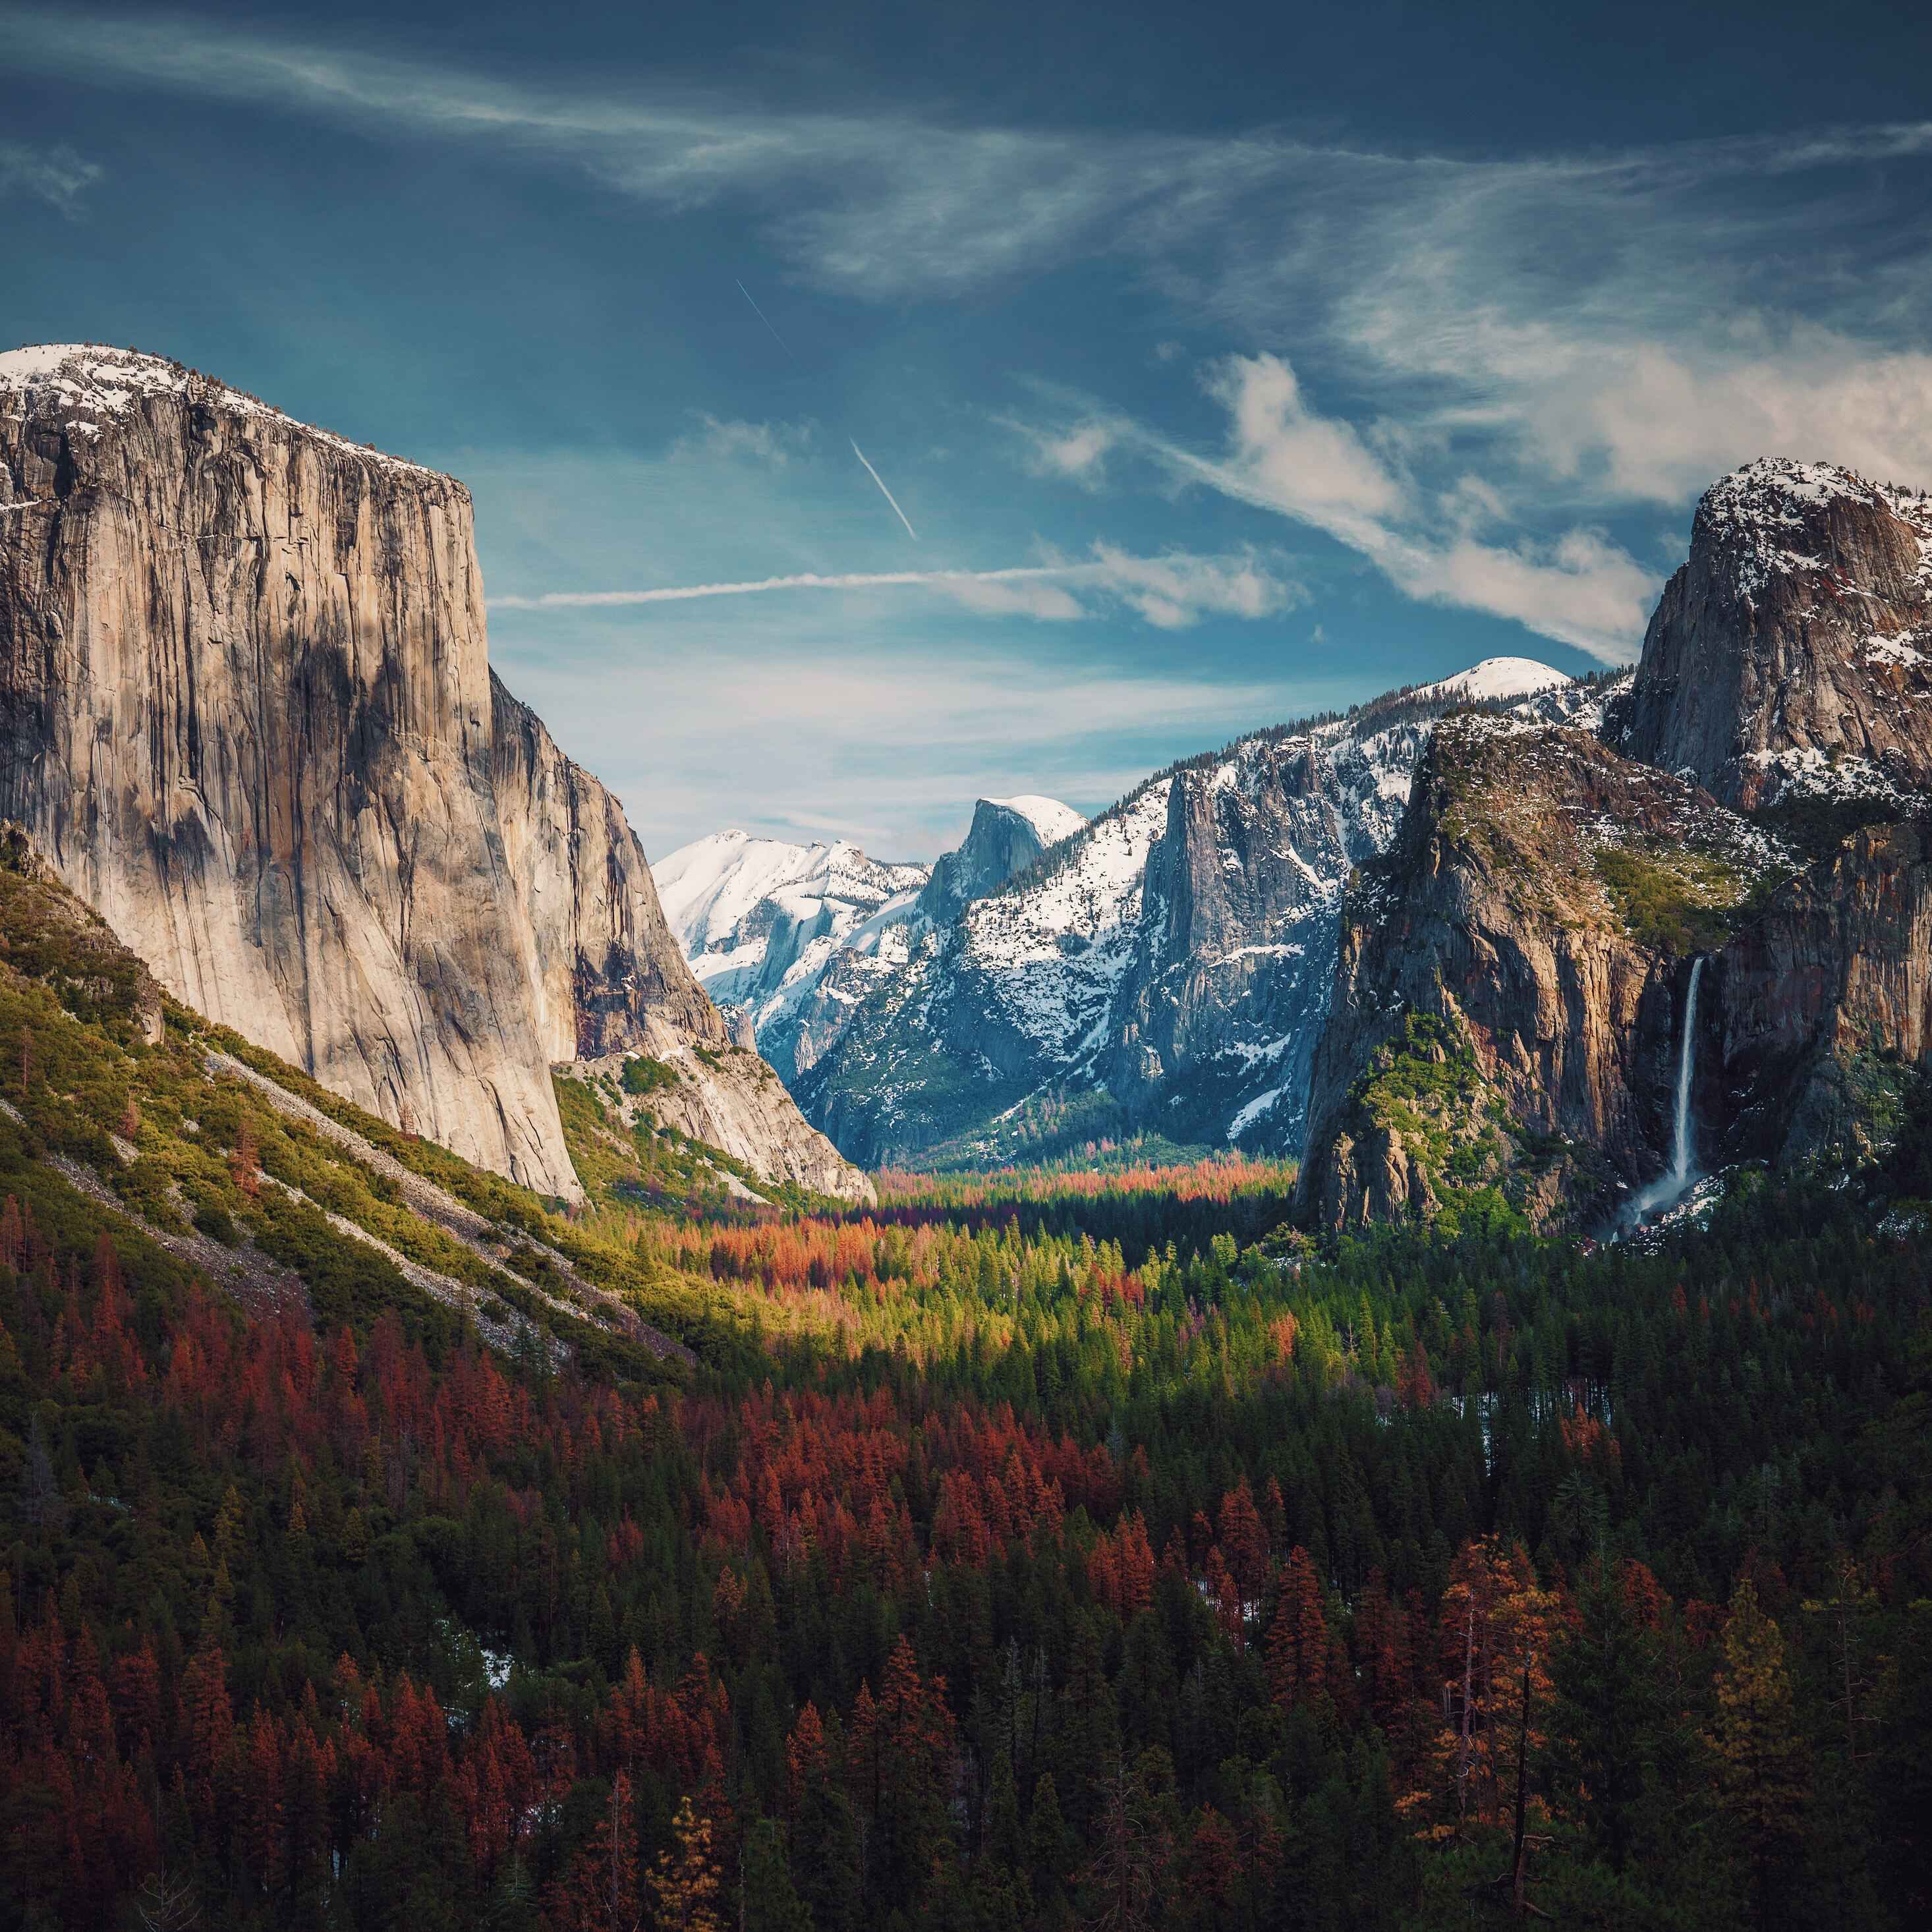 2932x2932 Beautiful Yosemite 8k Ipad Pro Retina Display Hd 4k Wallpapers Images Backgrounds Photos And Pictures